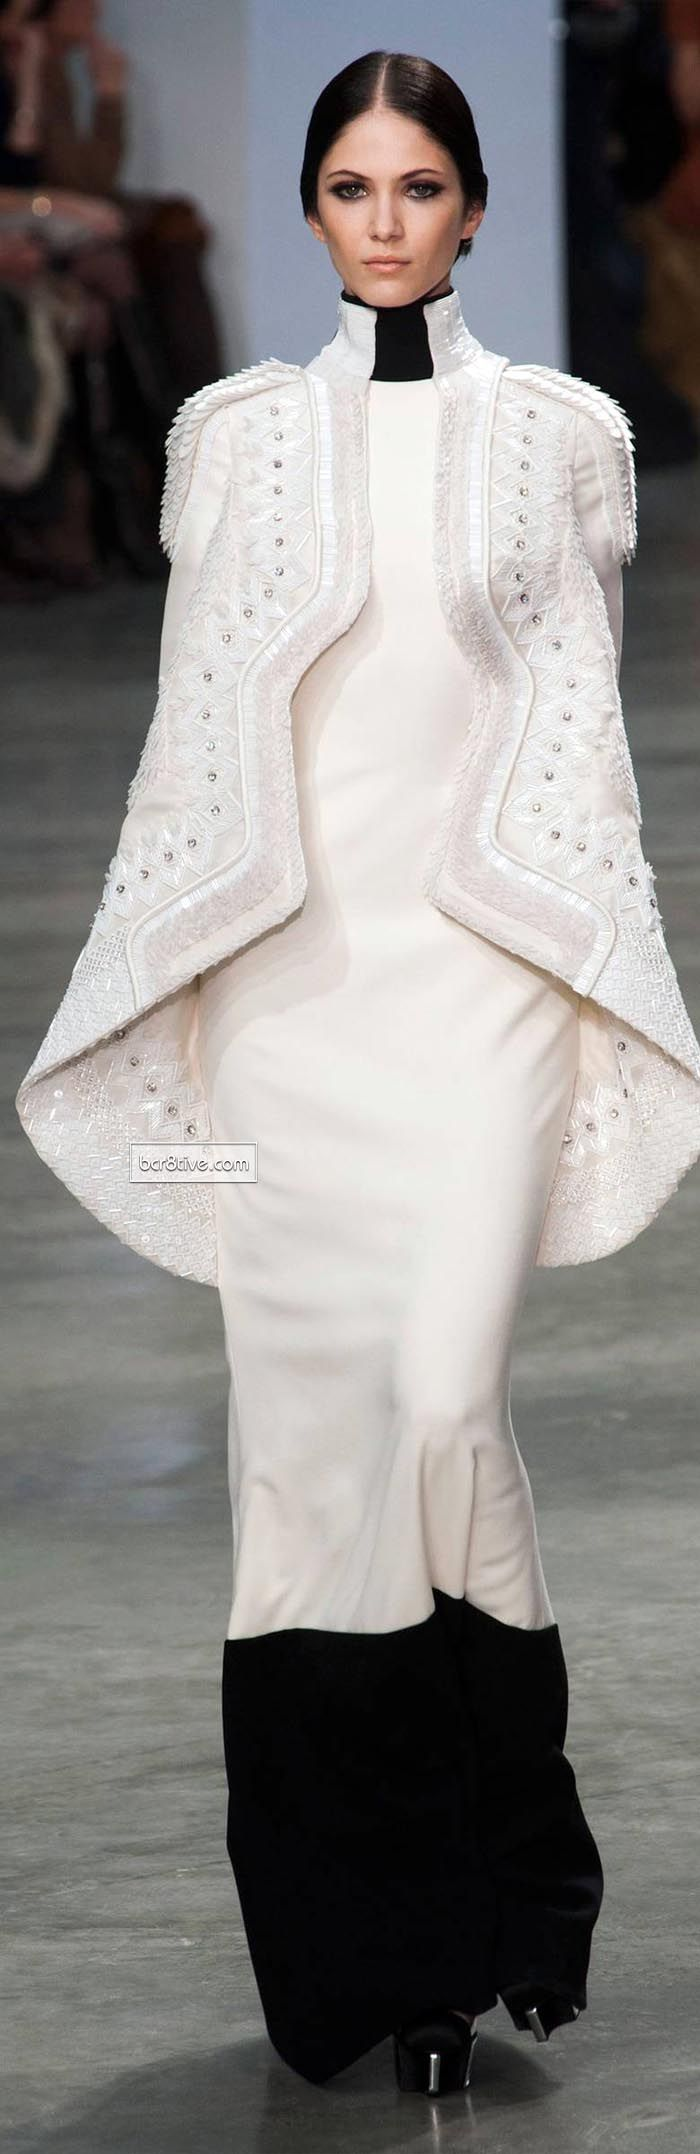 Stéphane Rolland Spring Summer 2013-14 Haute Couture @}-,-;--